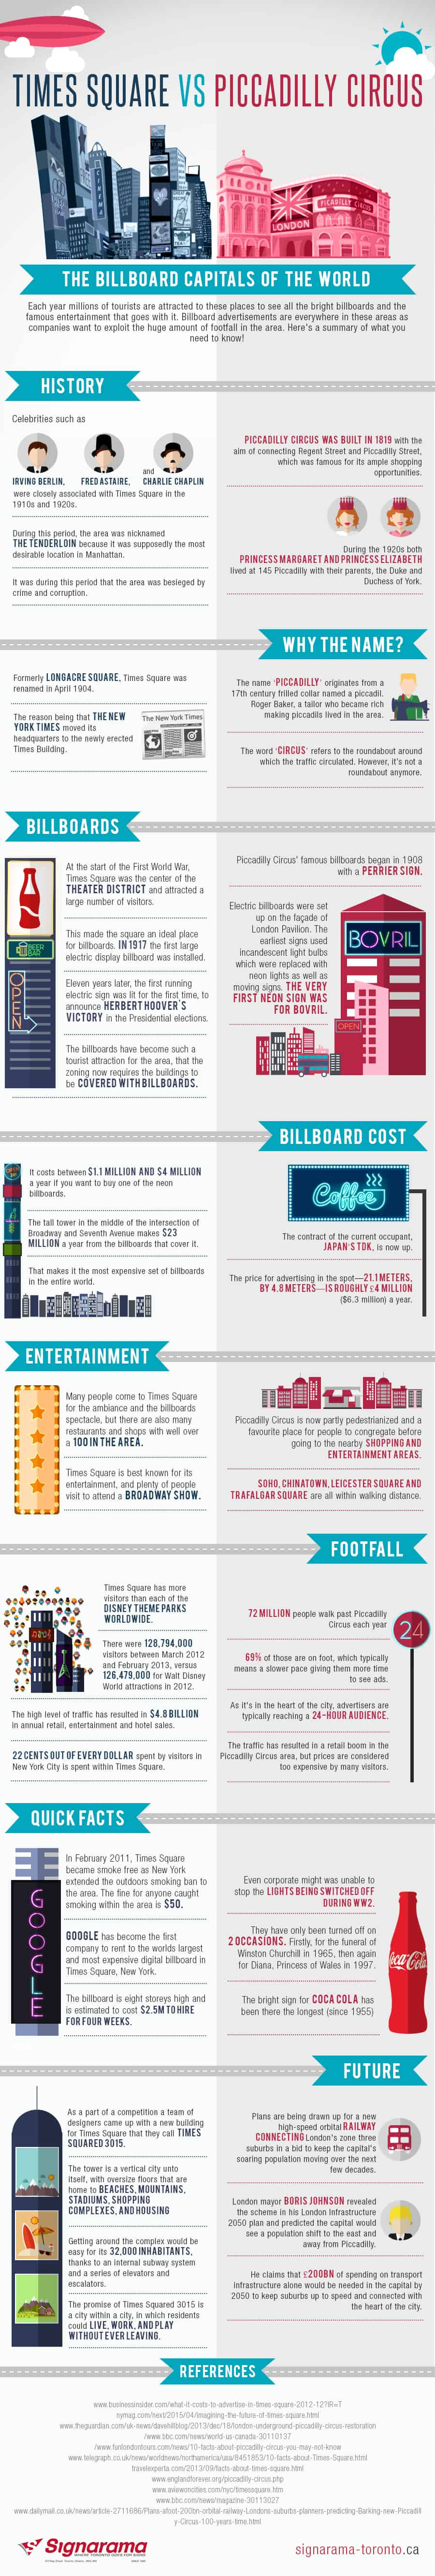 Times Square Vs Piccadilly Circus: The Billboard Capitals of the World – Infographic